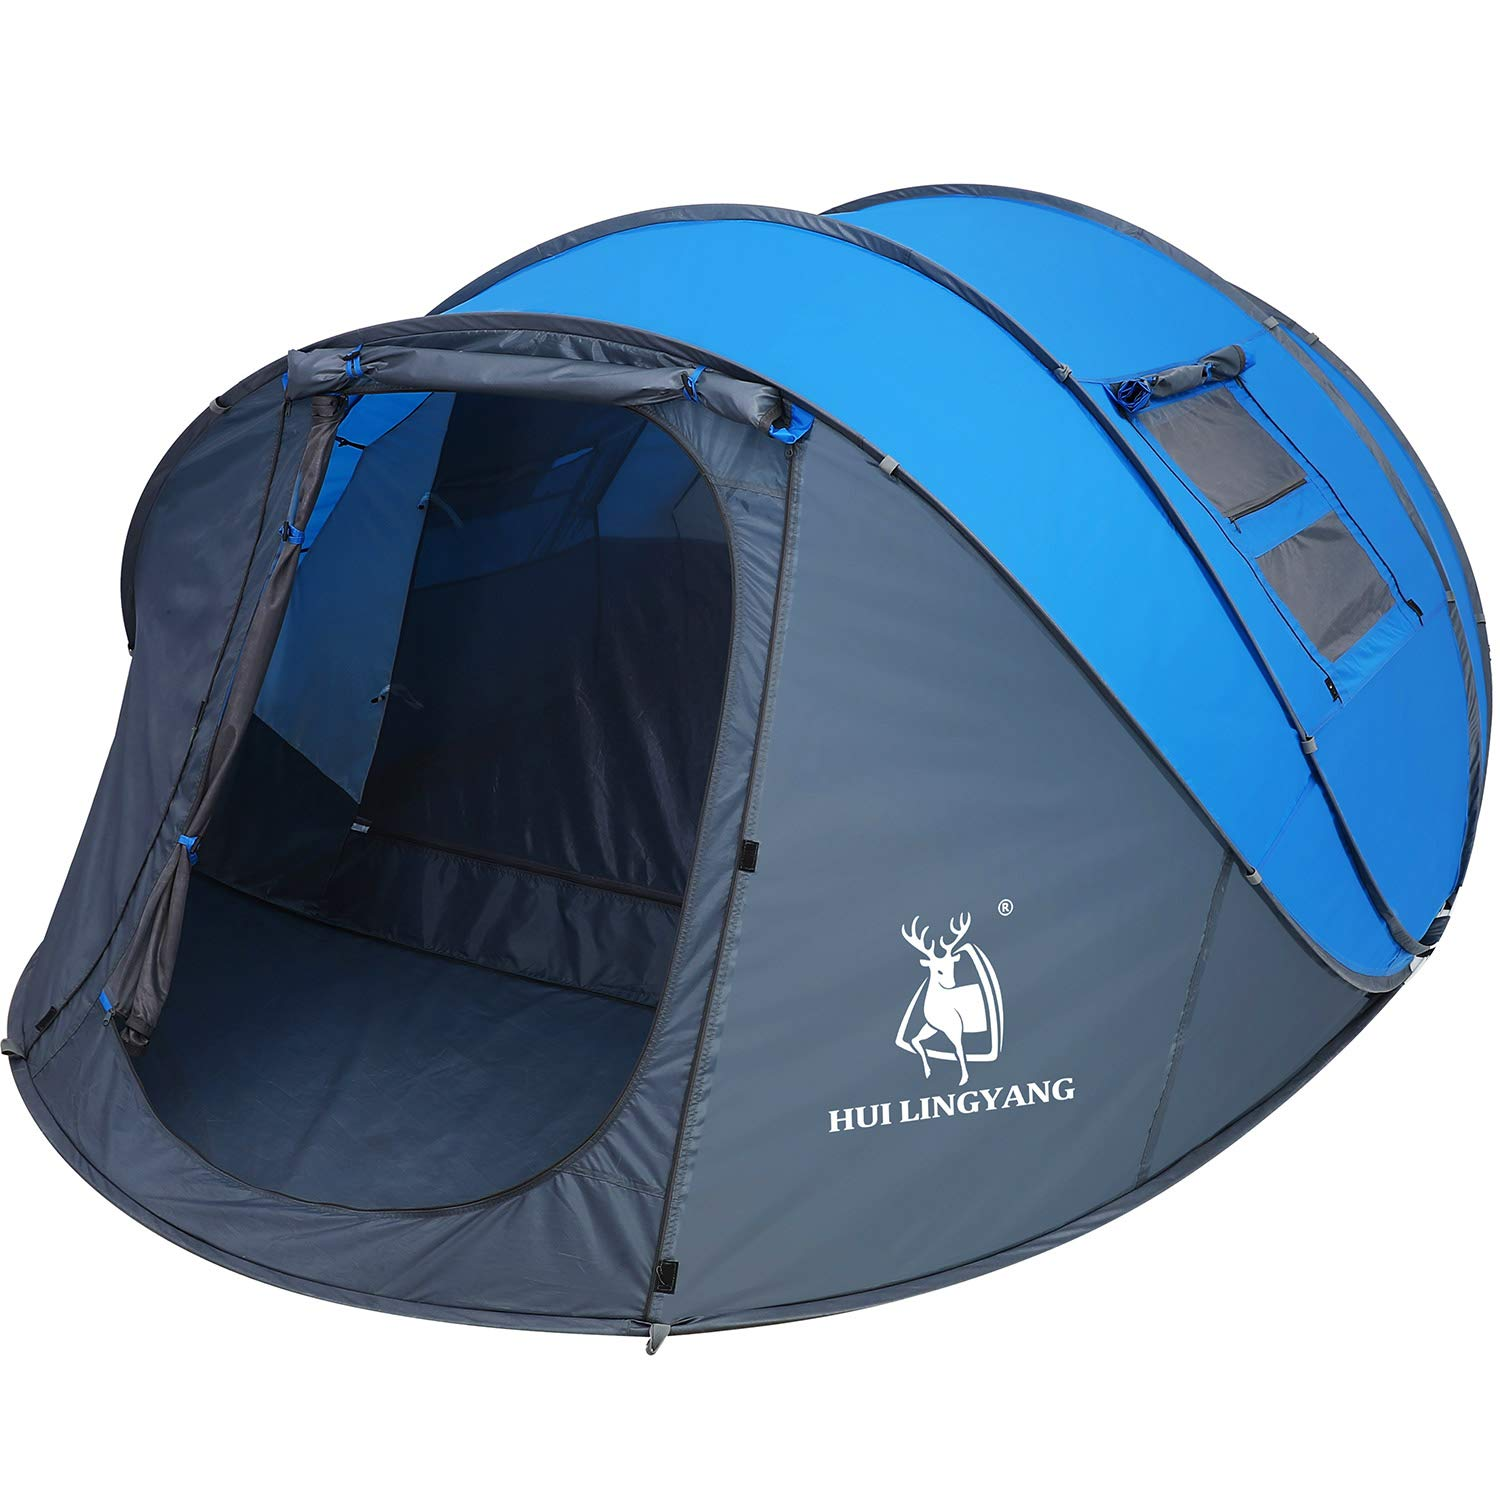 HUI LINGYANG 6 Person Easy Pop Up Tent- Rainproof, Automatic Setup,Waterproof,Double Layer - Instant Family Tents for Camping,Hiking & Traveling,Blue by HUI LINGYANG